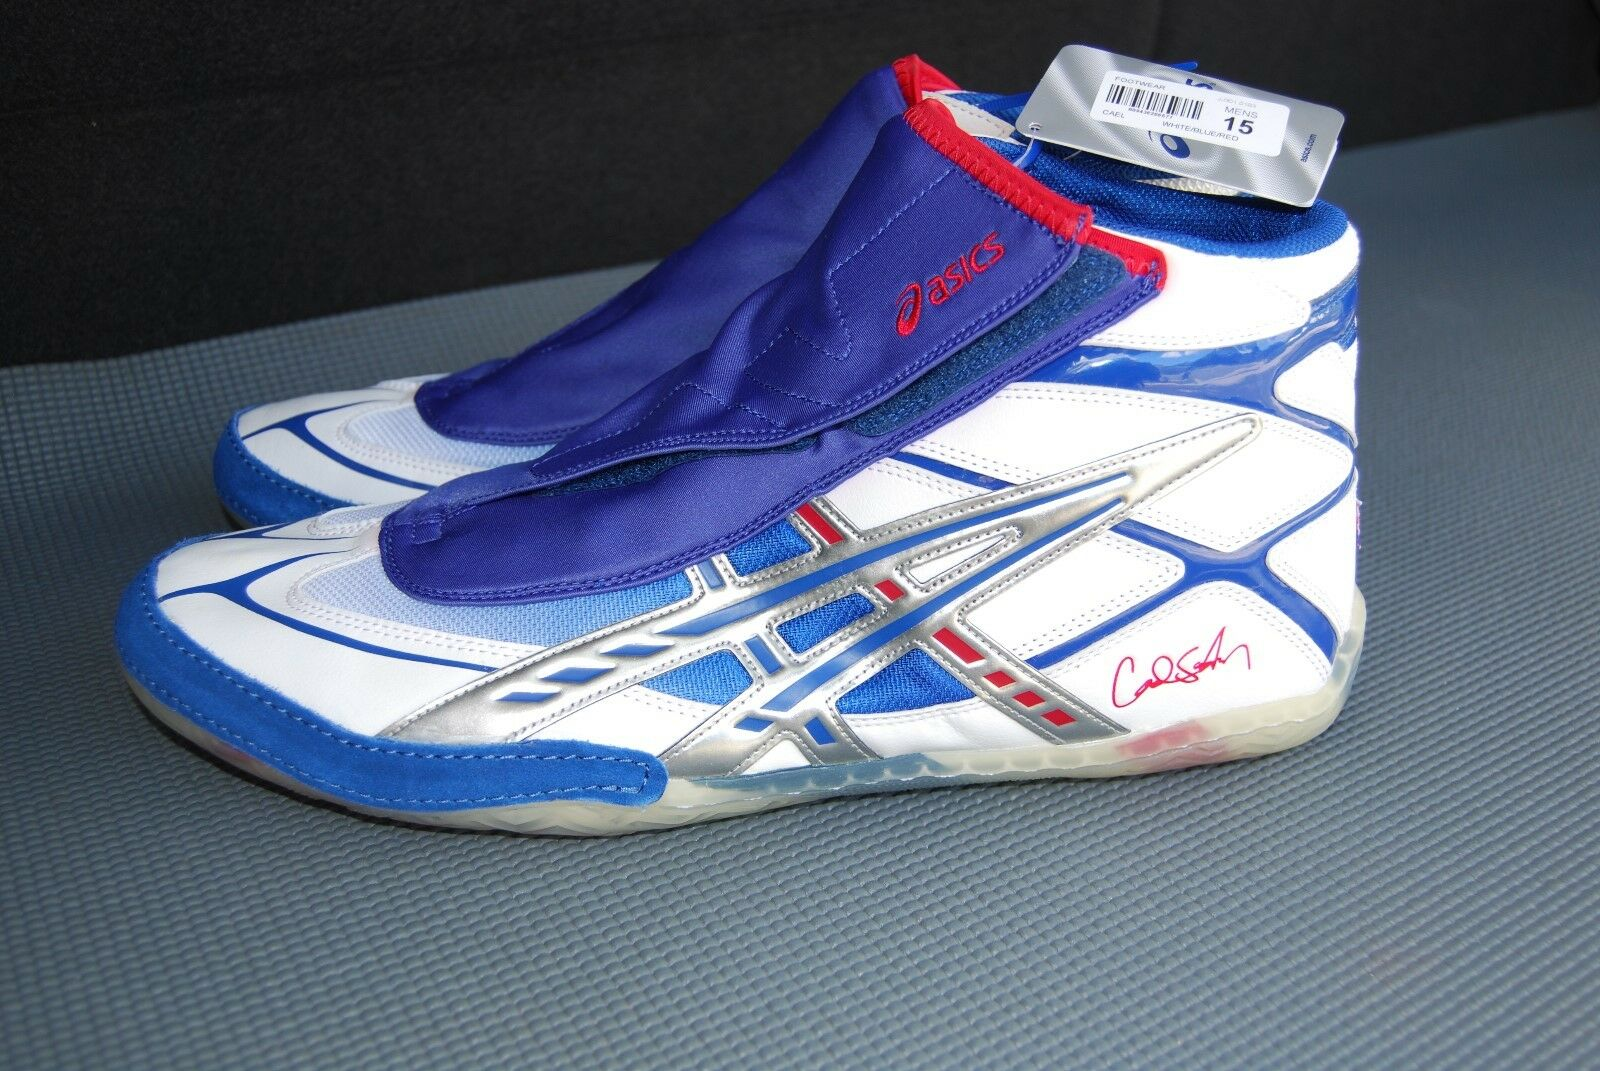 ASICS Cael Men's Wrestling shoes, White, bluee, Red, Size 15, NWT